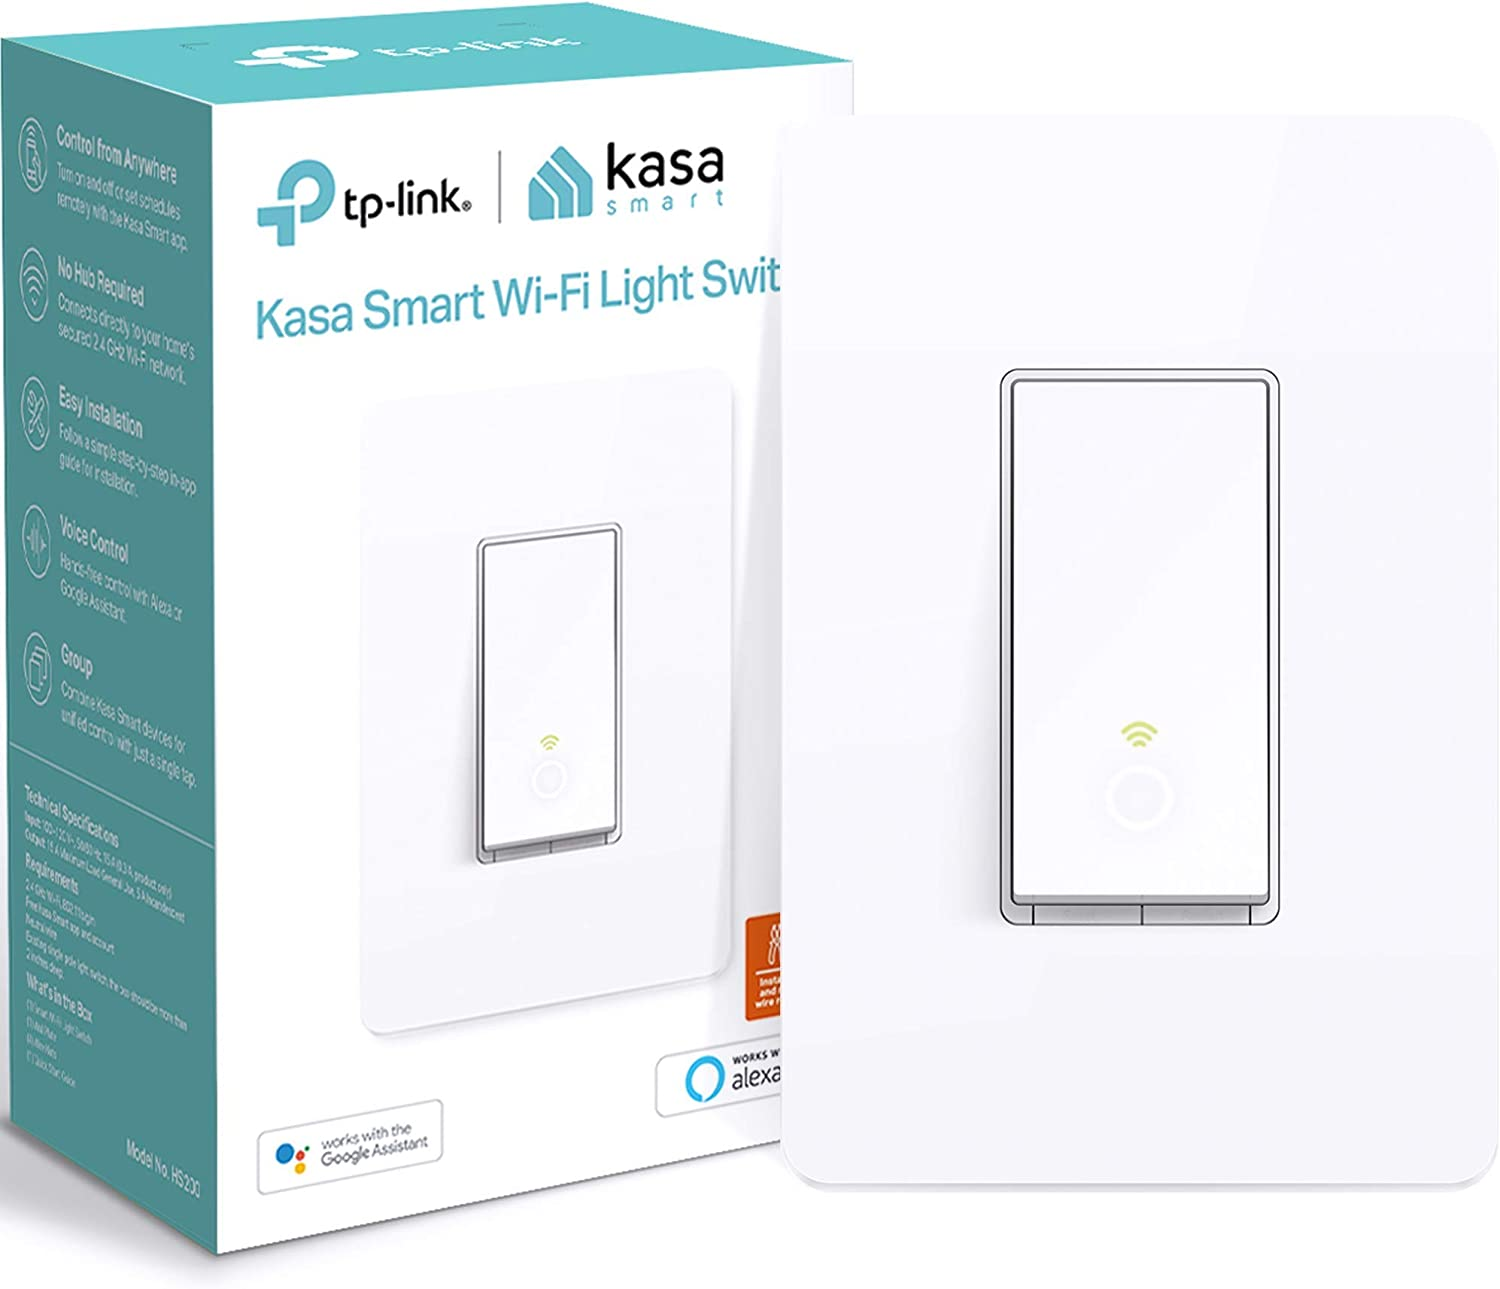 Kasa Smart Light Switch HS200, Single Pole, Needs Neutral Wire, 2.4GHz Wi-Fi Light Switch Works with Alexa and Google Home, UL Certified, No Hub Required , White